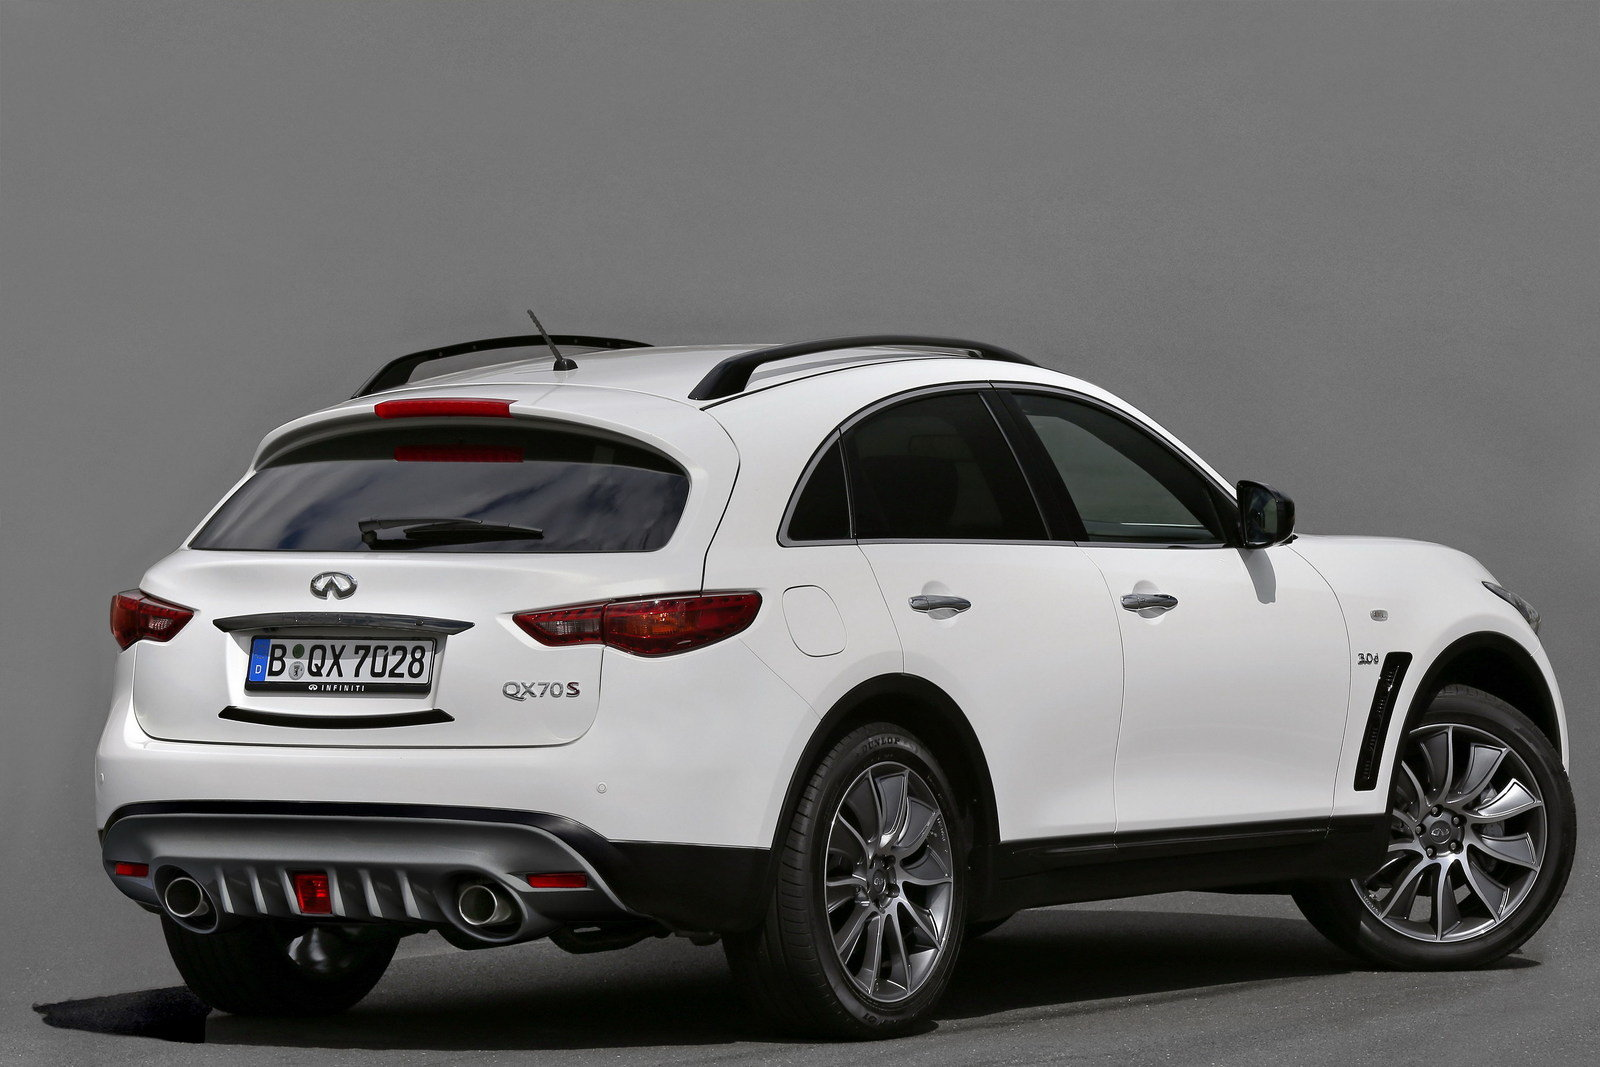 2016 infiniti qx70 ultimate picture 645592 car review top speed. Black Bedroom Furniture Sets. Home Design Ideas